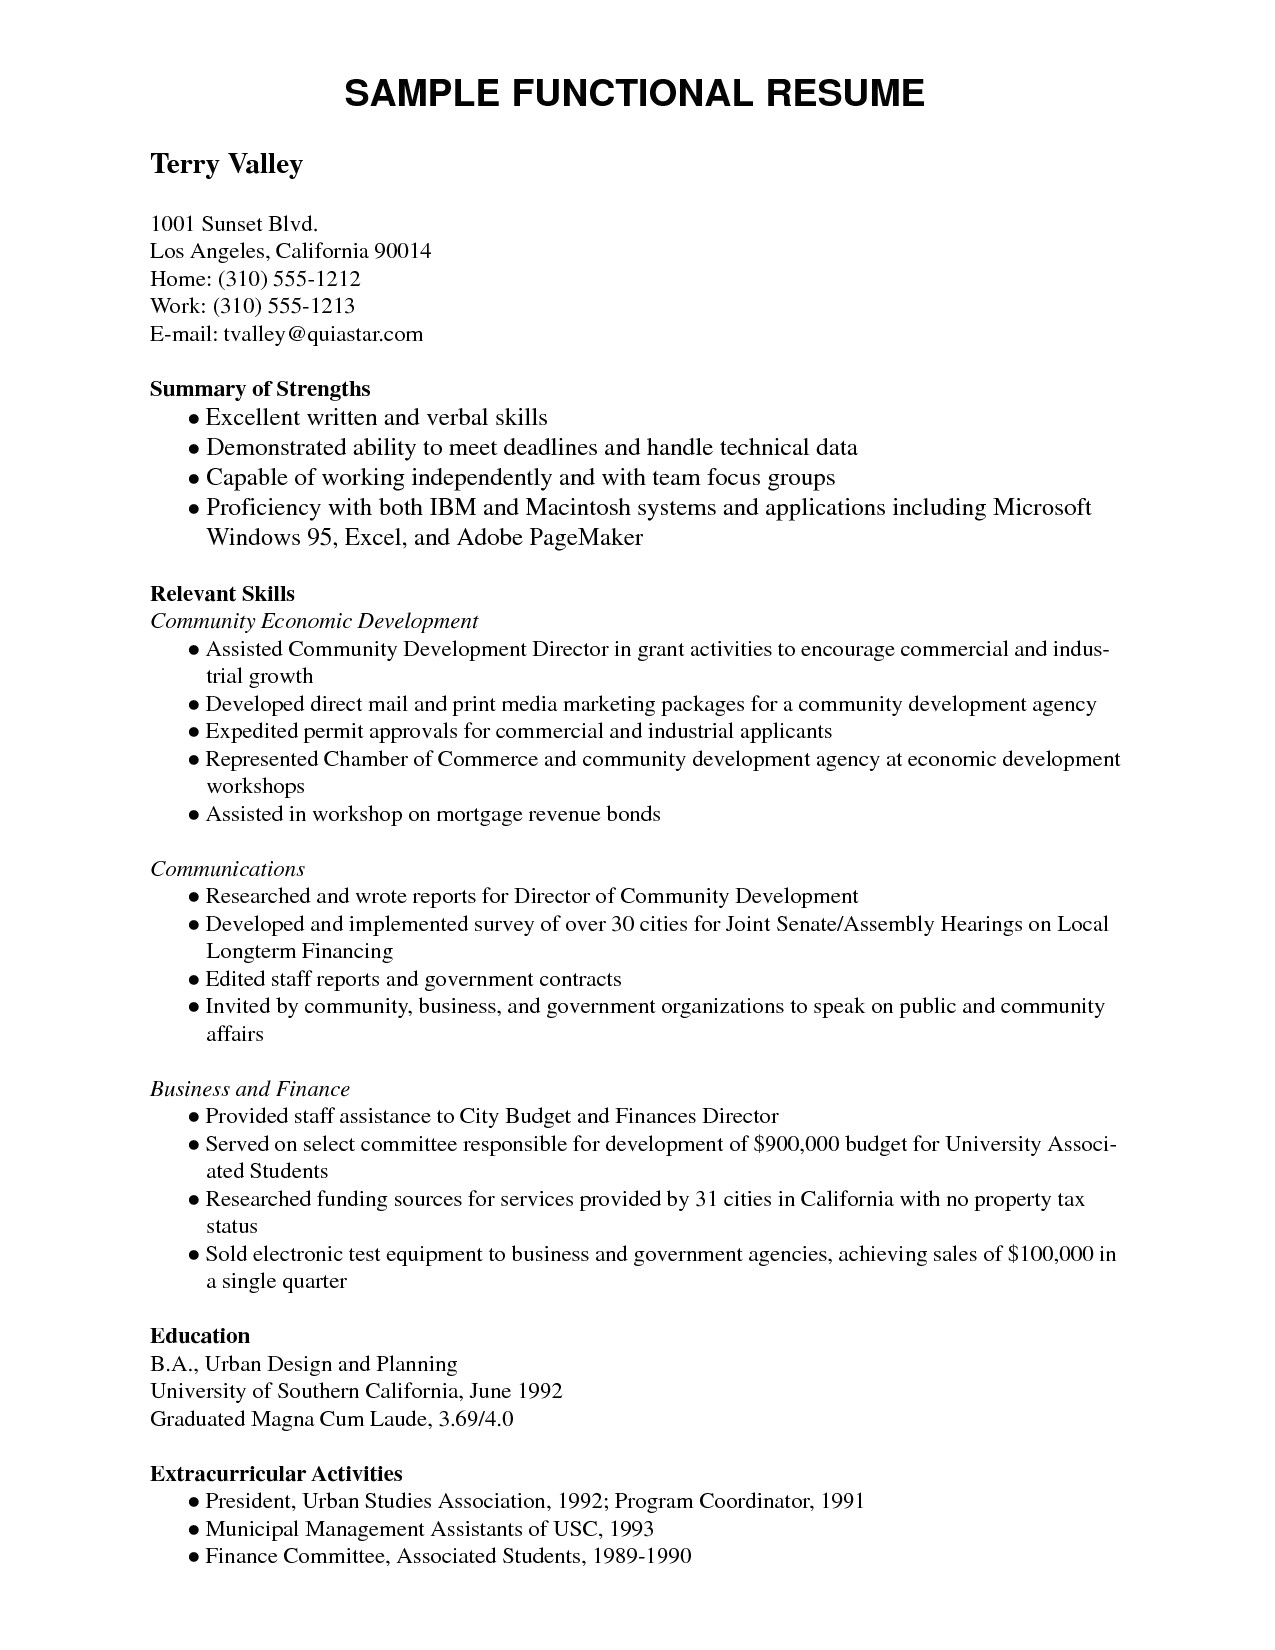 Functional Resume Template Pdf - 64 Concepts Resume Writing Template